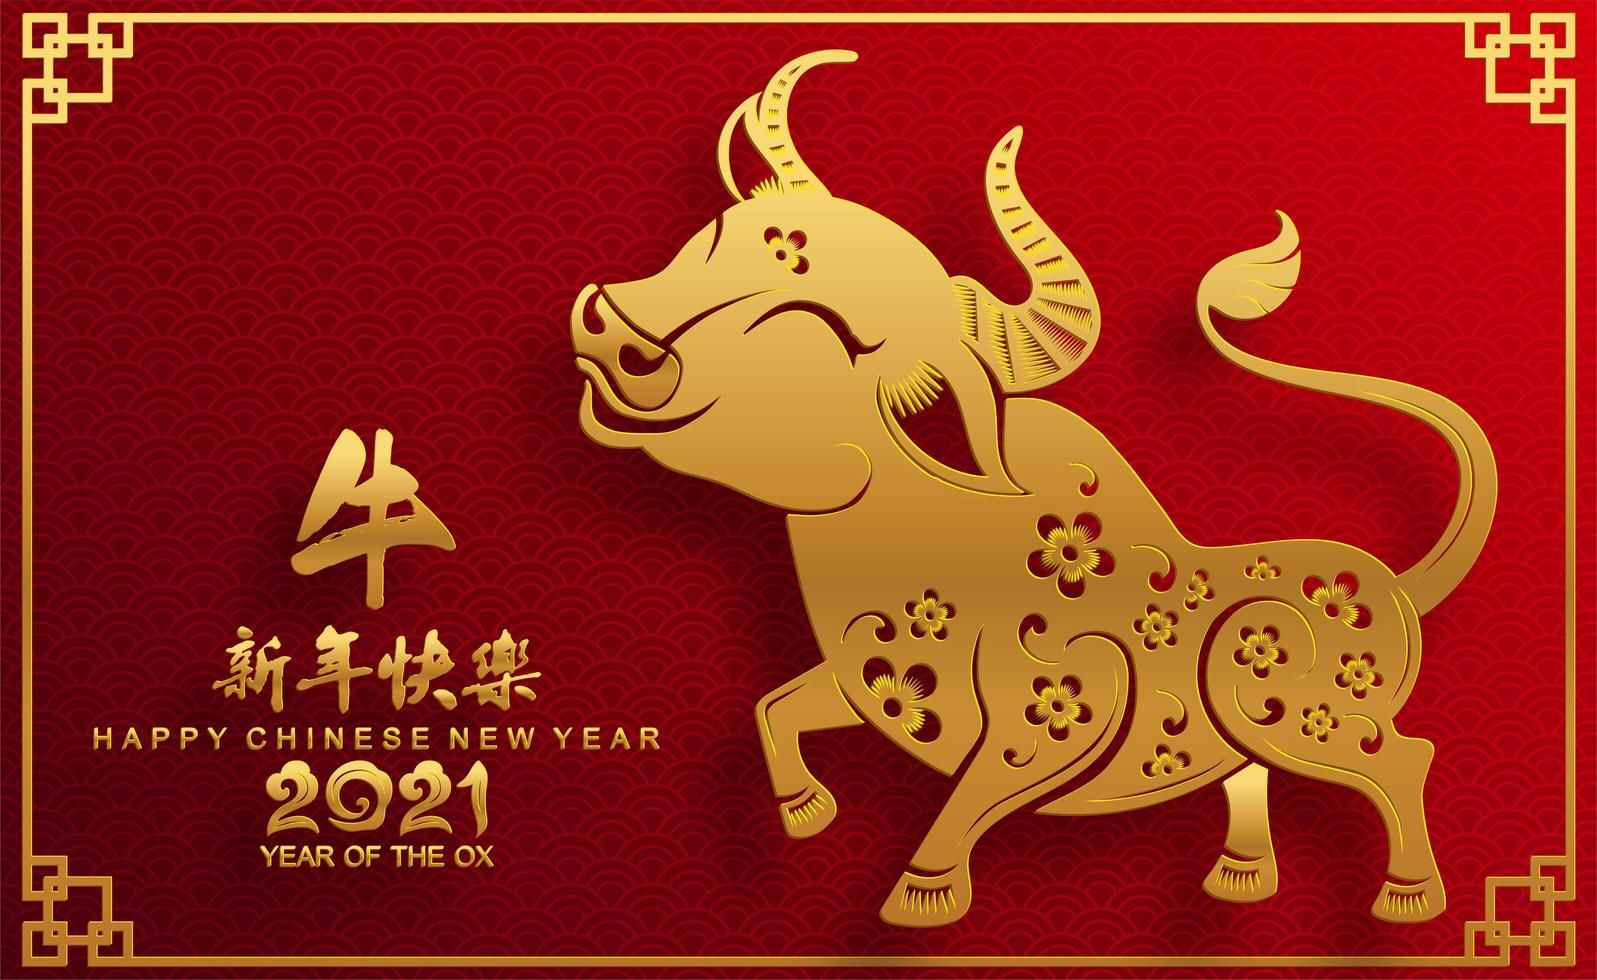 Chinese New Year 2021 Design With Golden Ox Chinese New Year Chinese New Year Card Happy Chinese New Year